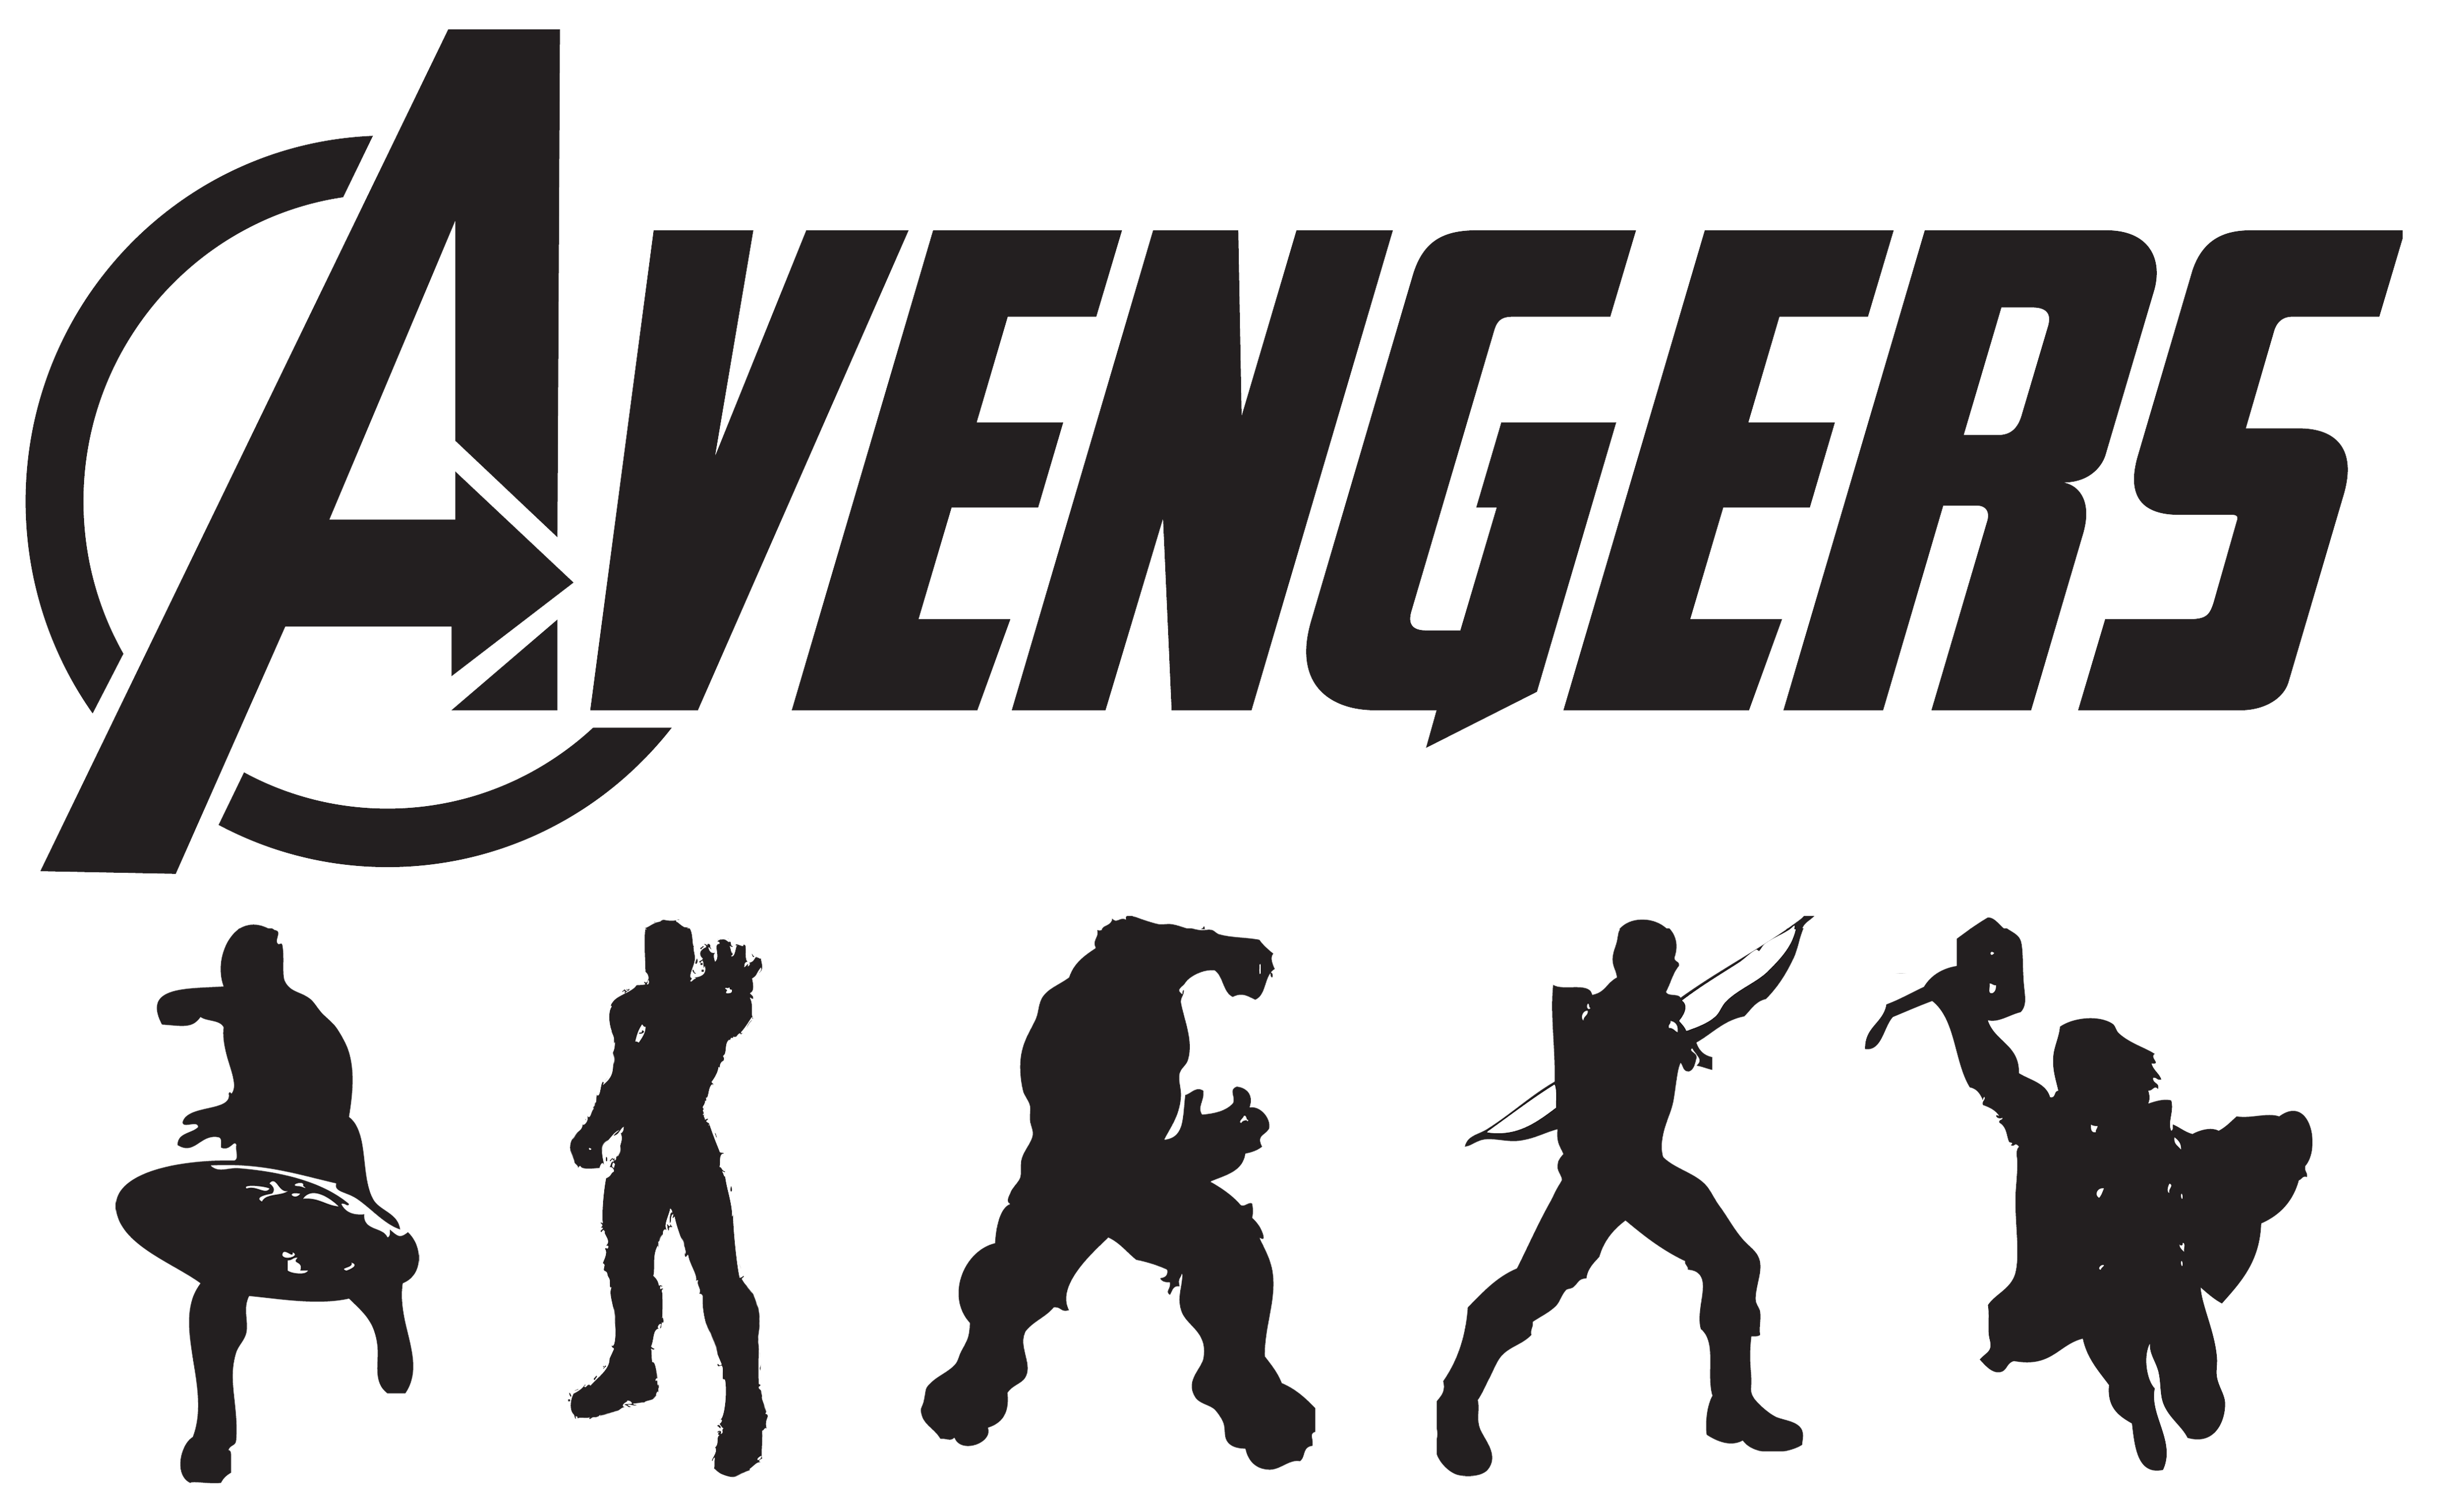 Avengers silhouette png. Submitted by modsoft art